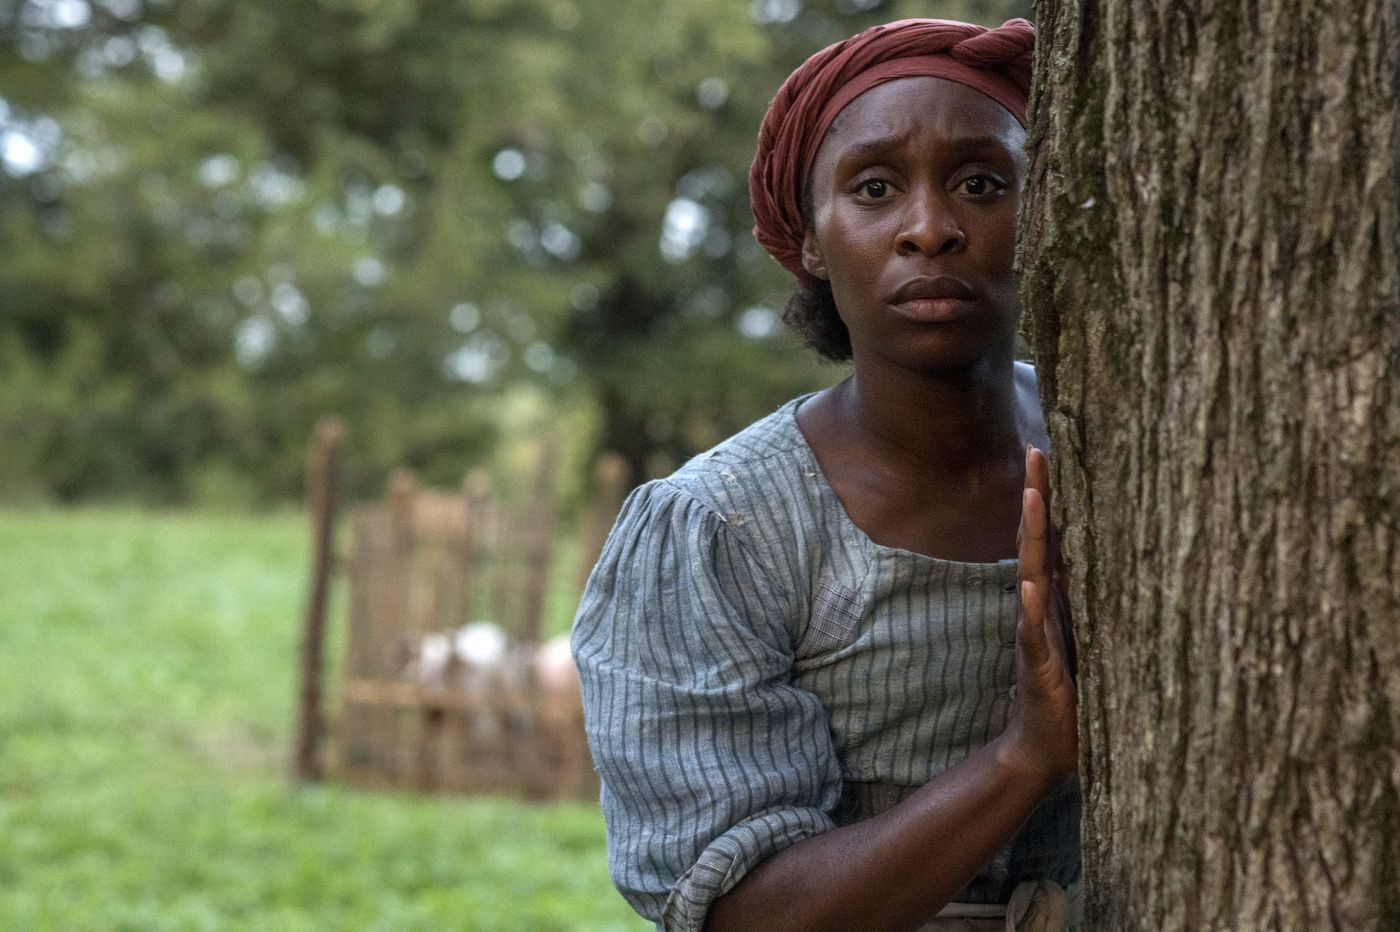 Film Review: Harriet Gets Lost in the Myth of Its Hero